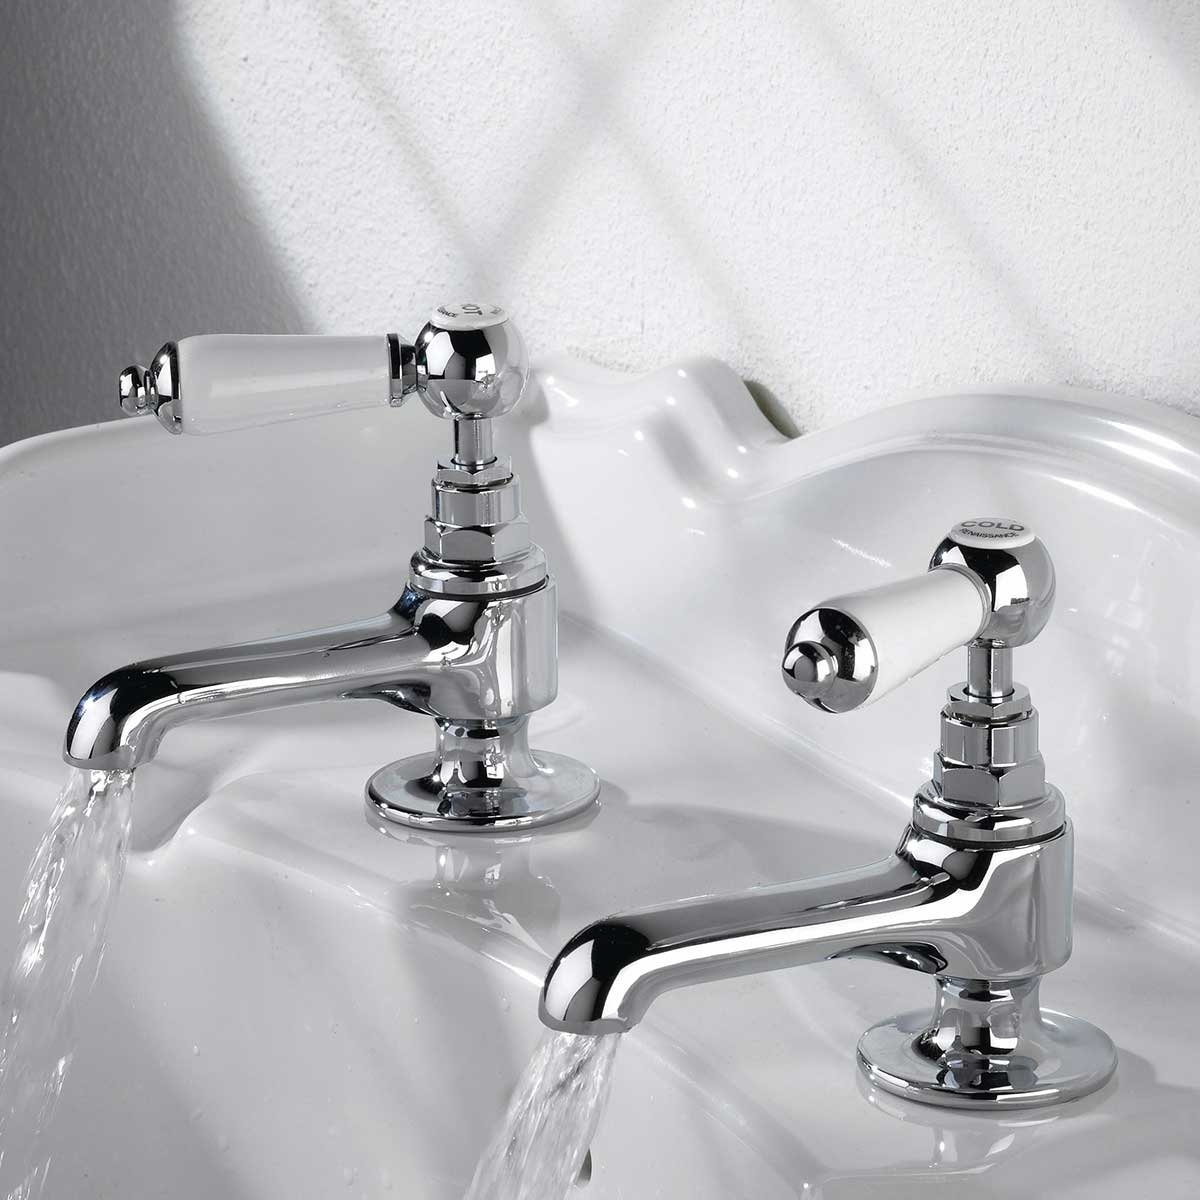 Bristan Renaissance Basin Taps - Chrome Plated